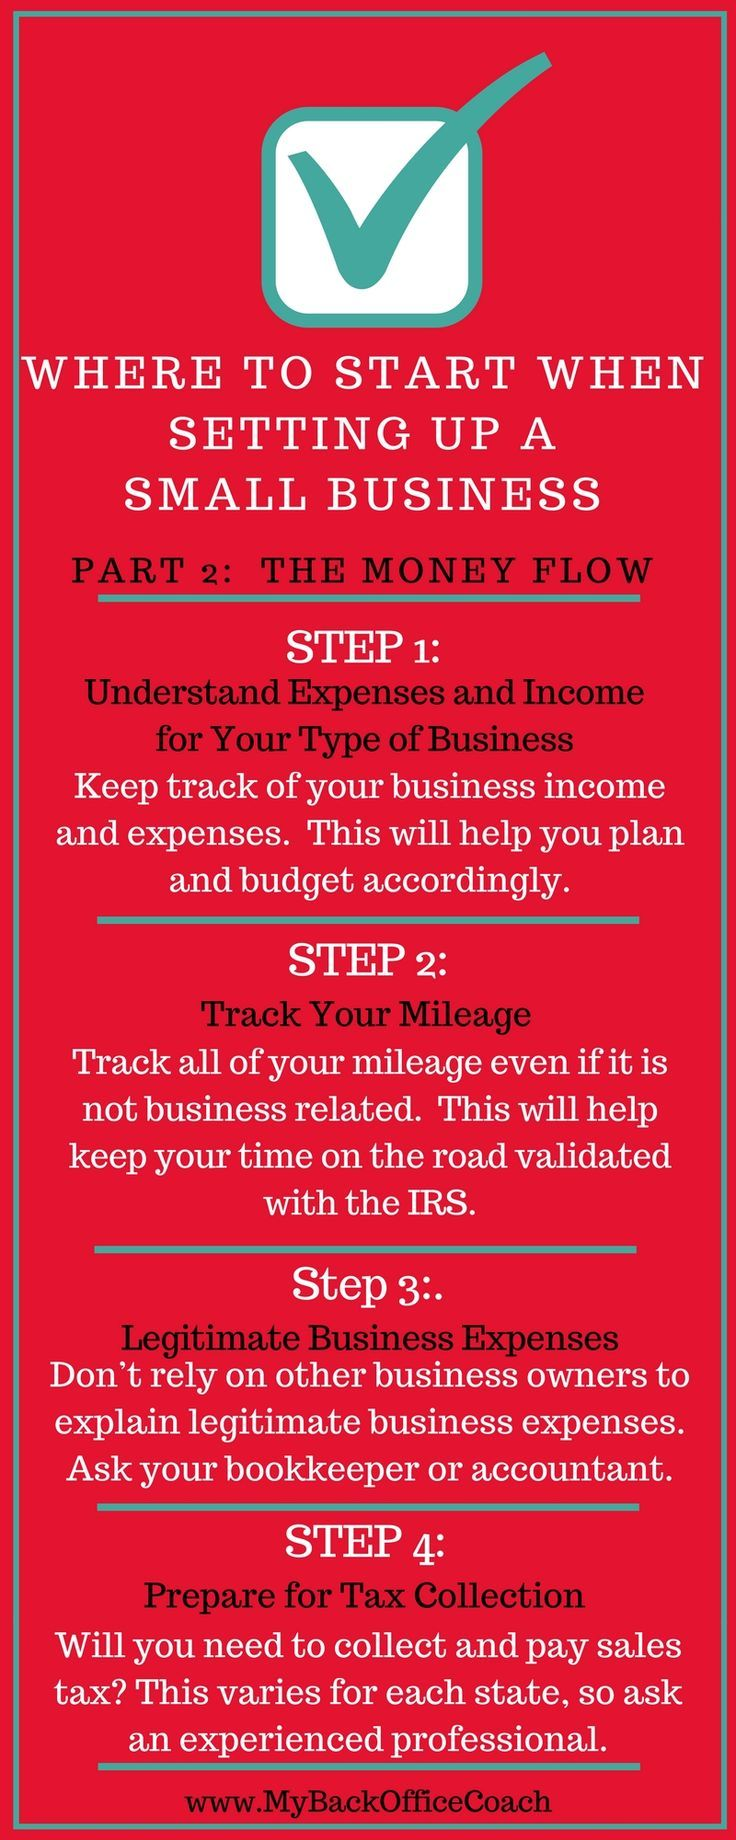 Where to Start When Setting Up a Small Business | Part 2:  The Money Flow #smallbusiness #moneyflow #bookkeeping #accounting #tips #taxes